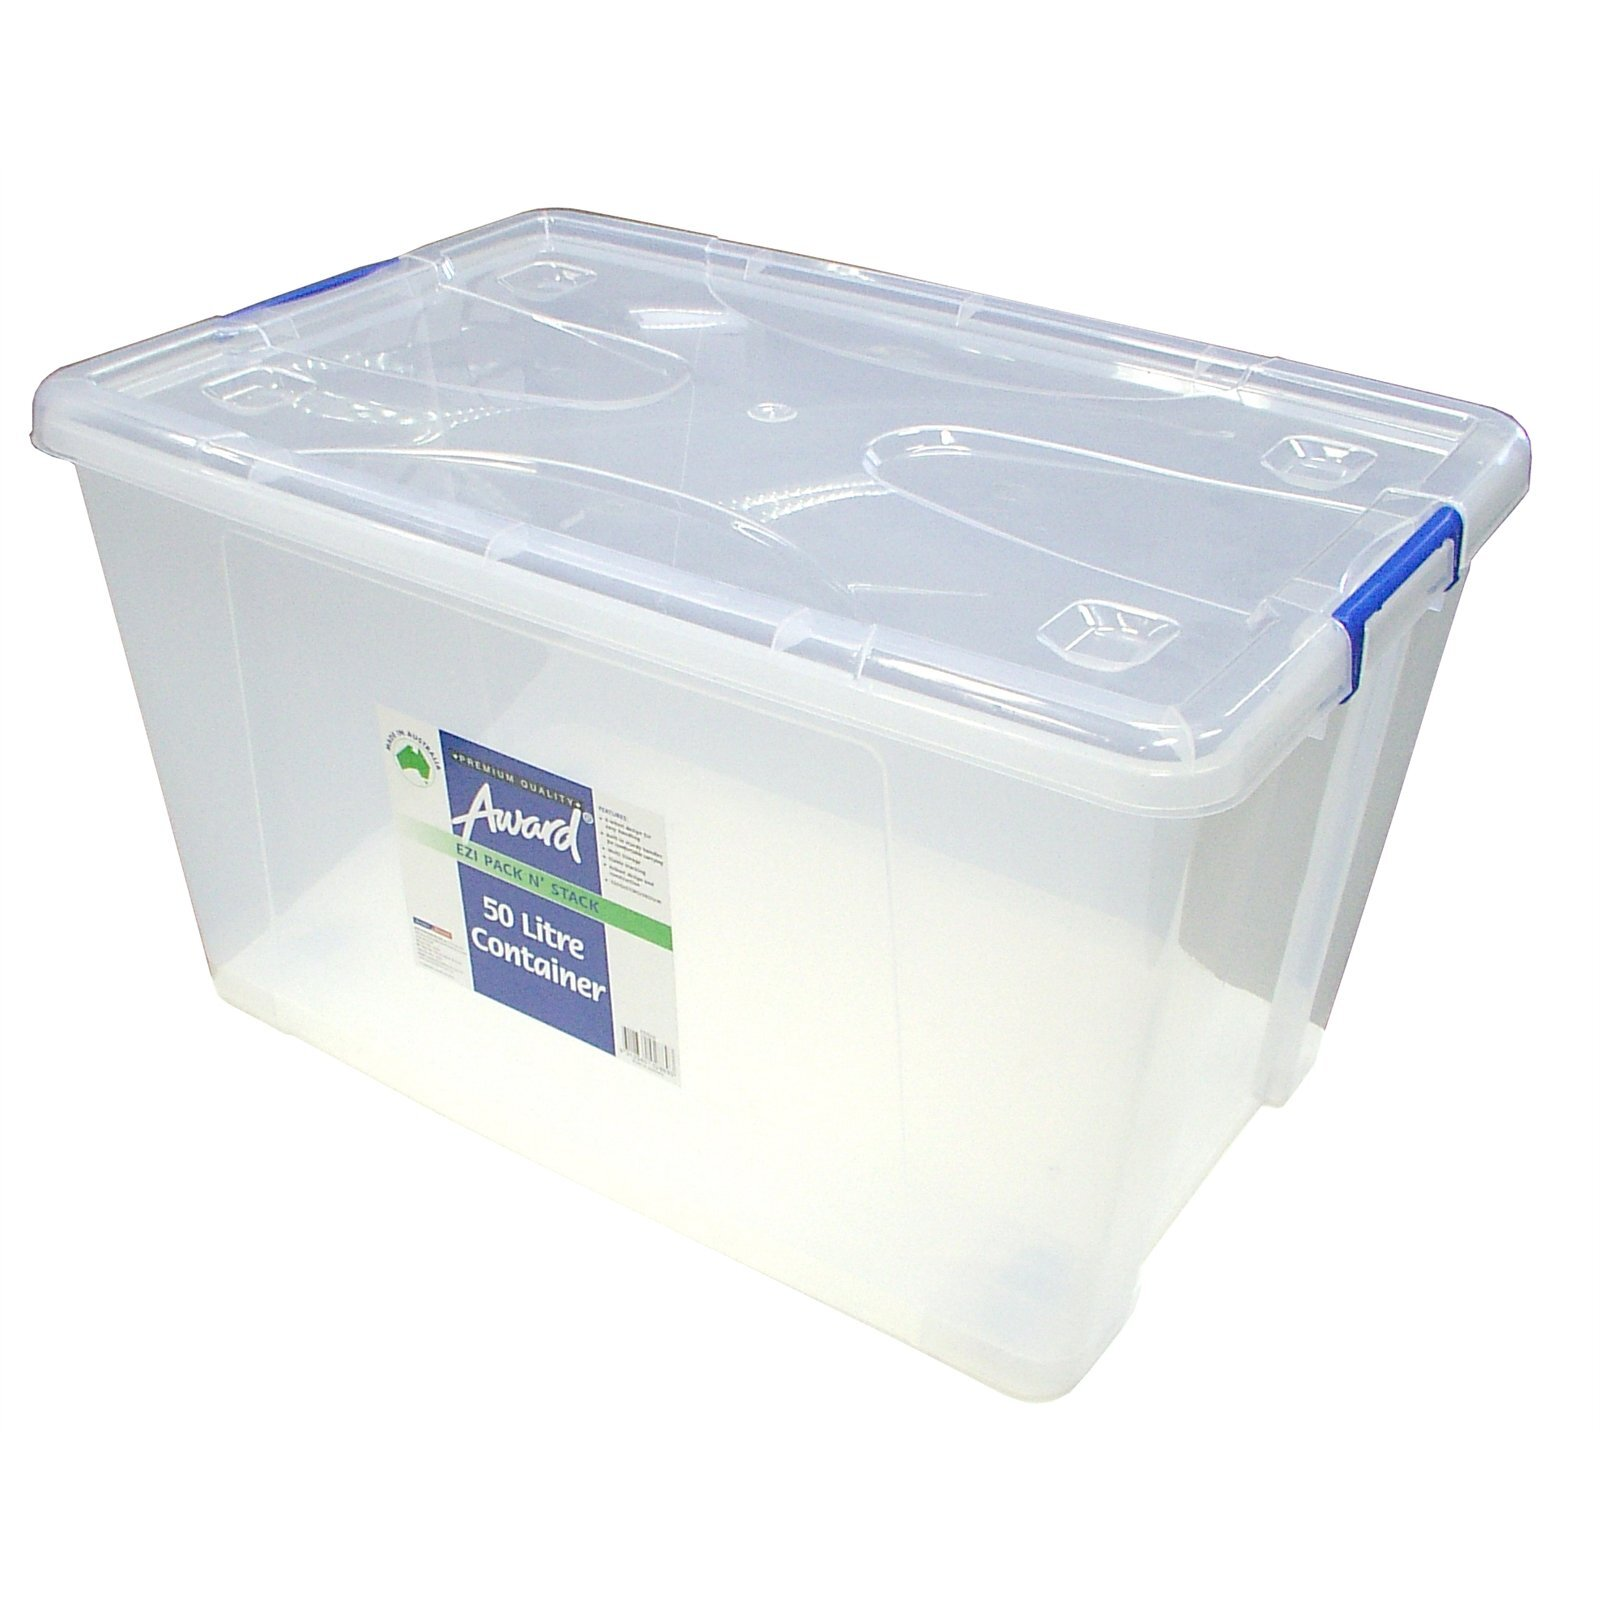 Award Pack N Stack Storage Container with Wheels - 50L